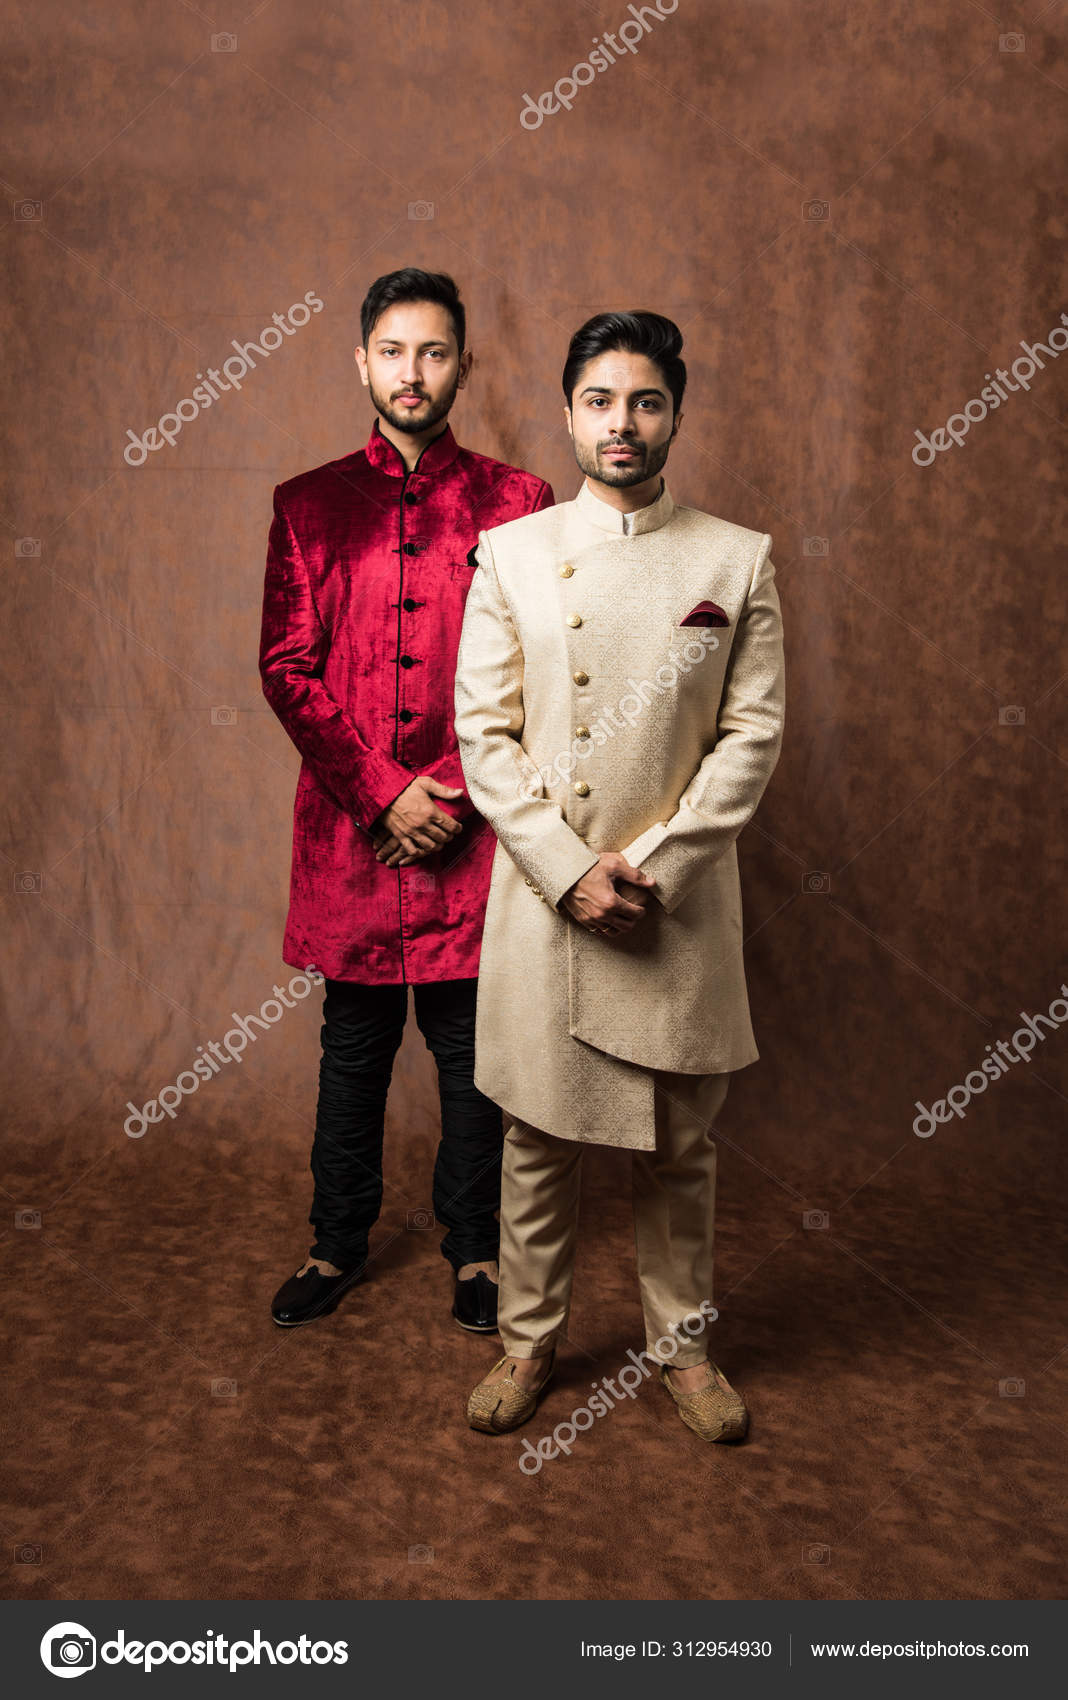 Two Indian Men Wears Ethnic Traditional Cloths Male Fashion Models Stock Photo C Stockimagefactory Com 312954930